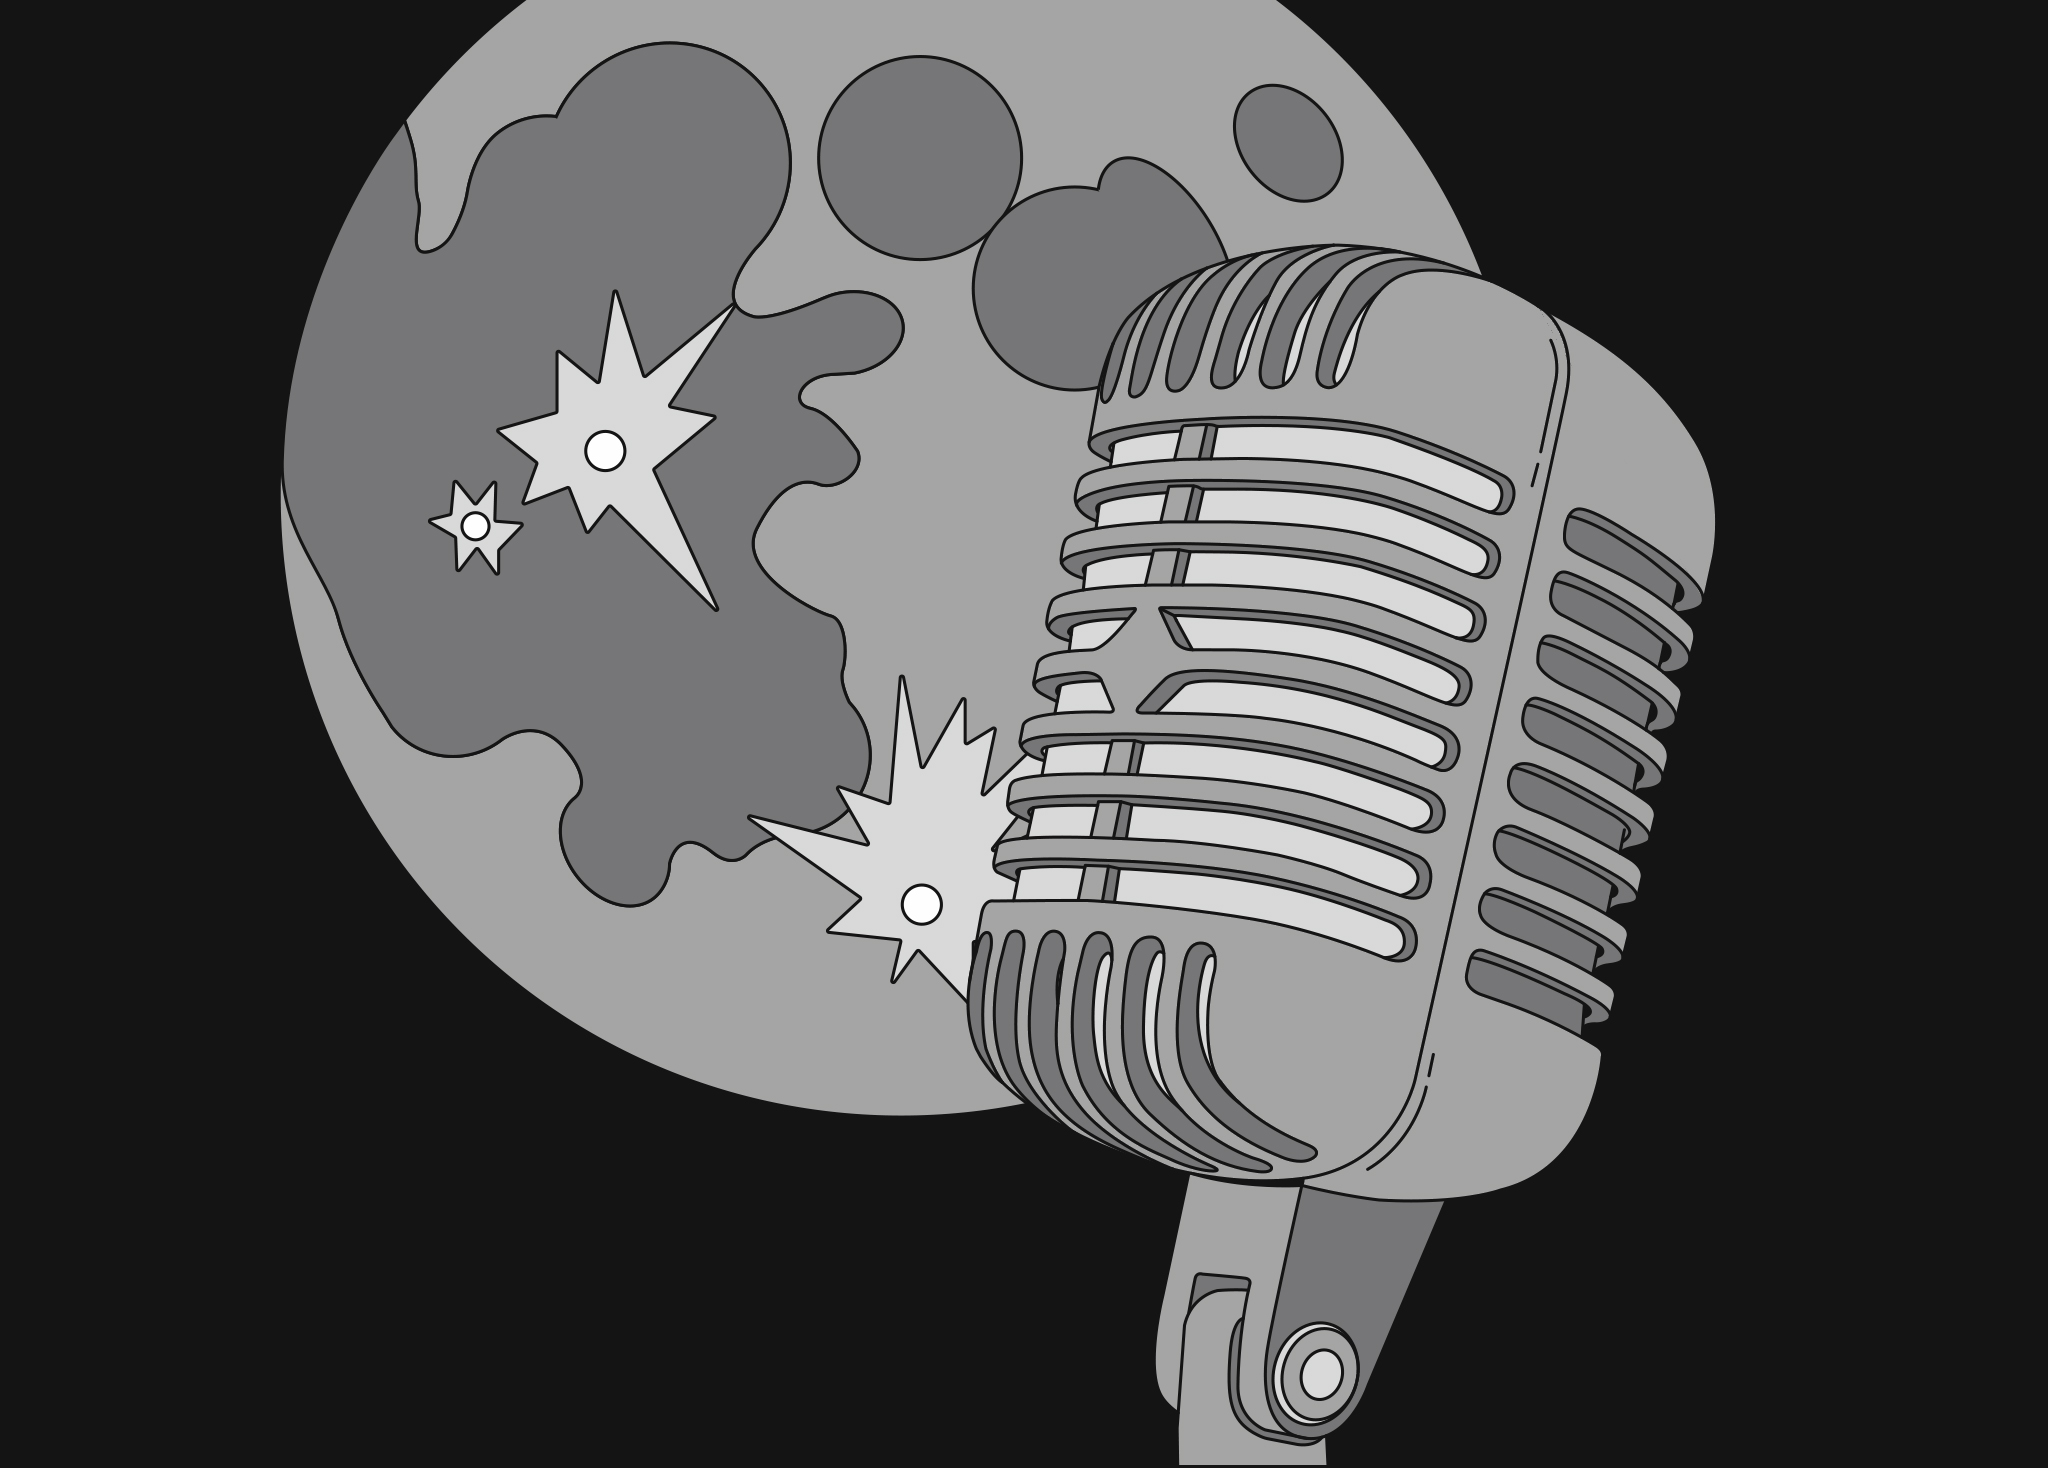 Clipart student ask microphone jpg transparent library Giving students the mic - The Broadside jpg transparent library